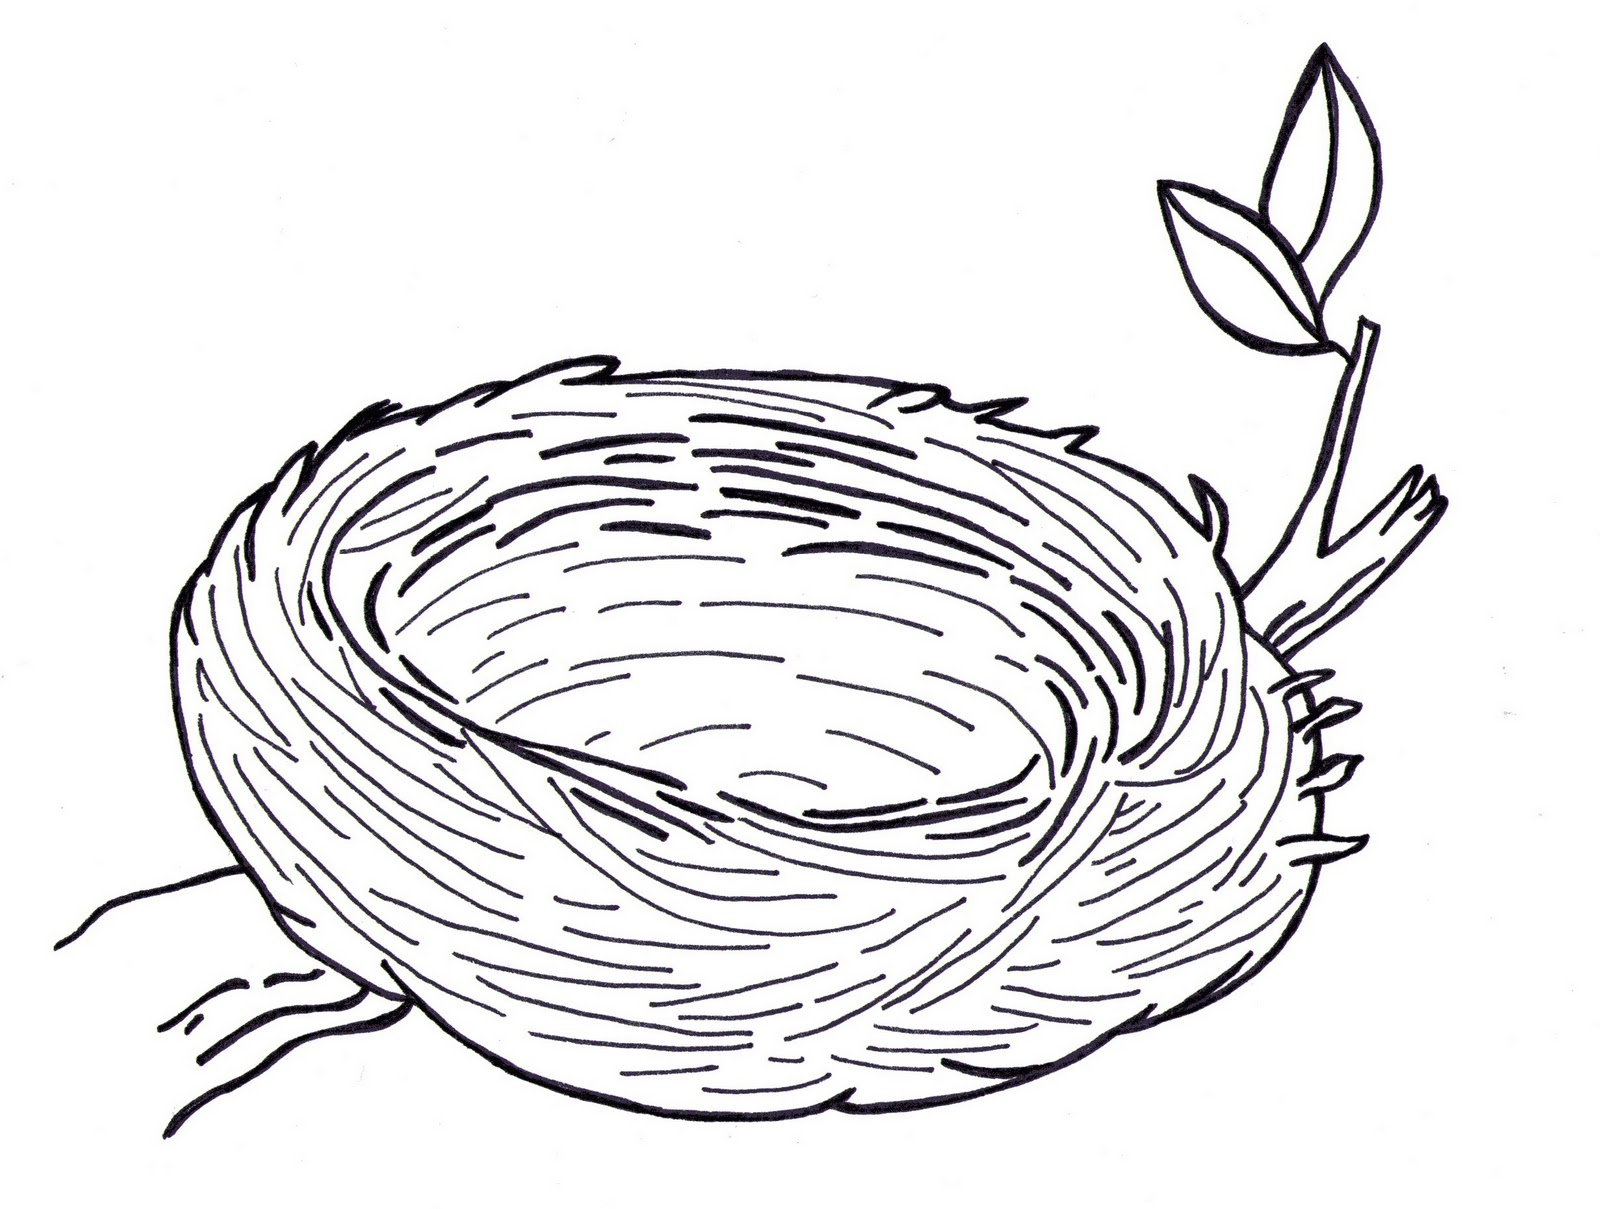 Free Nest Outline Cliparts, Download Free Clip Art, Free.